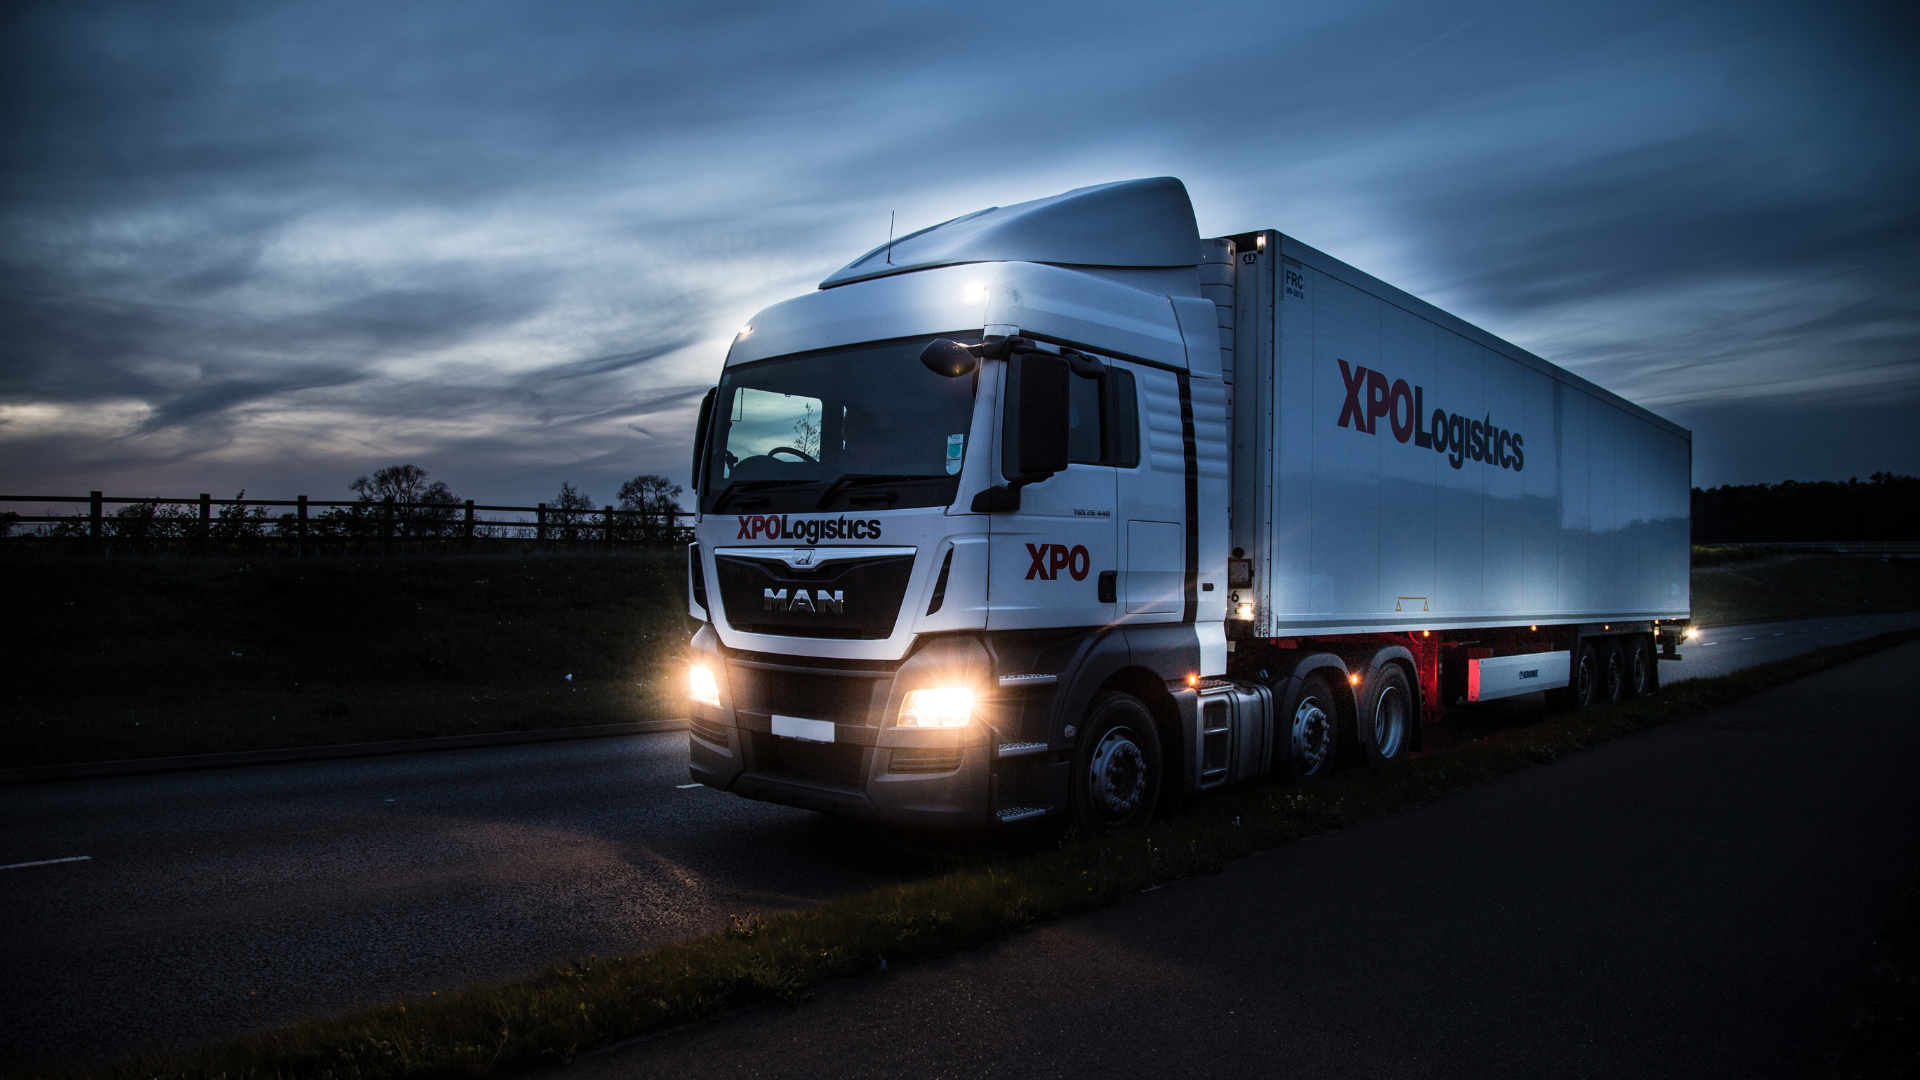 XPO truck in the UK